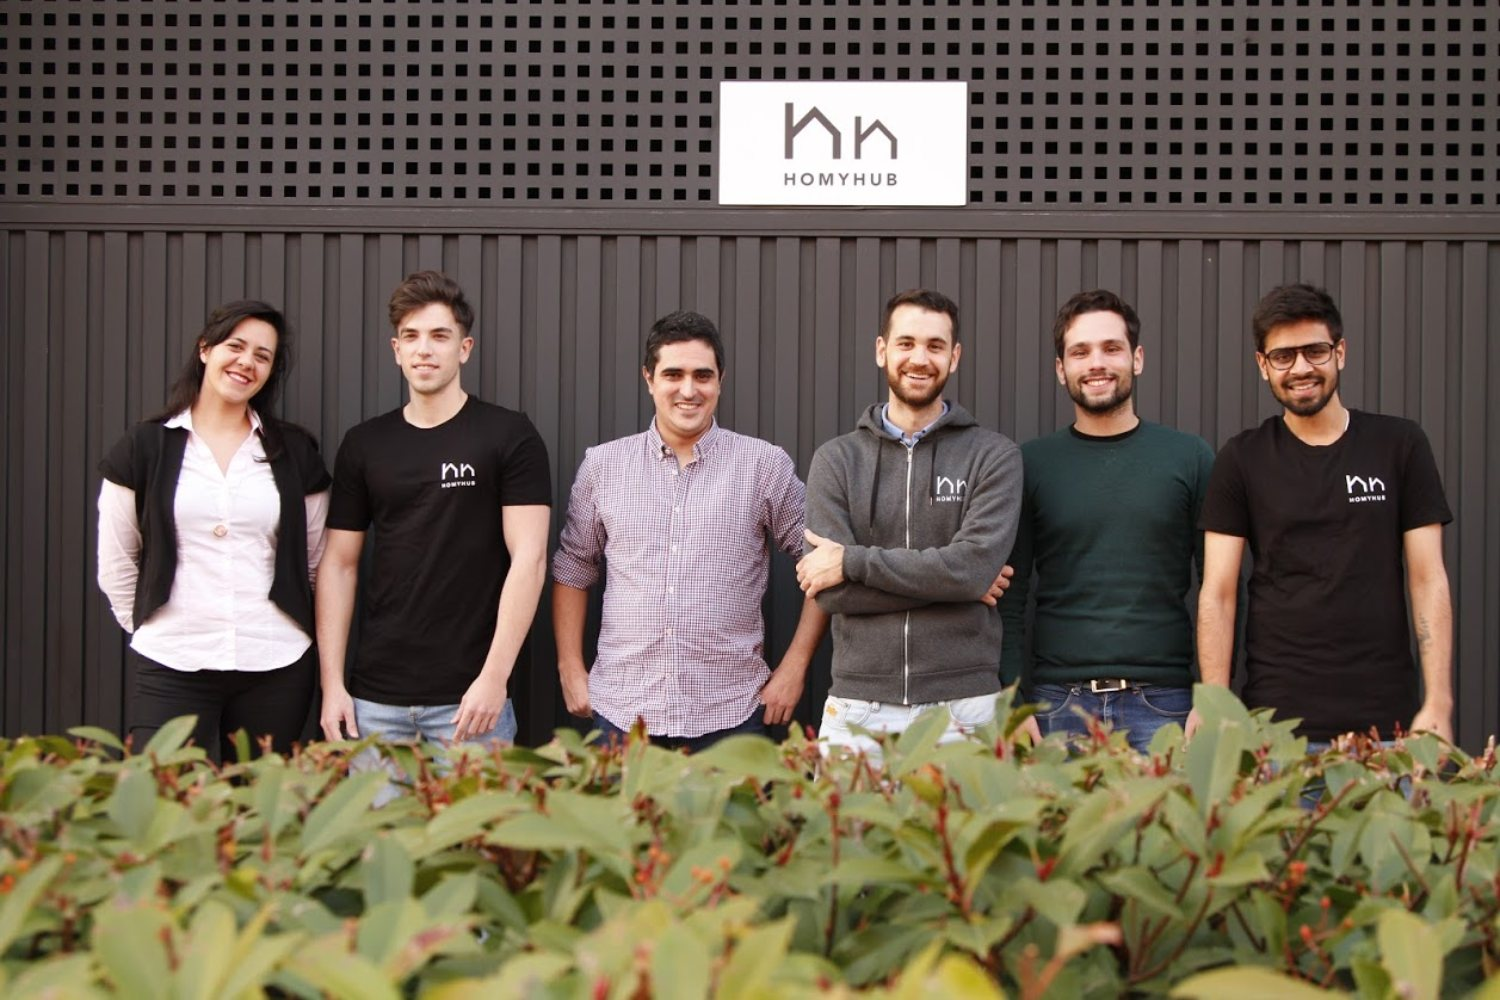 HOMYHUB securing more than half a million euros seed round